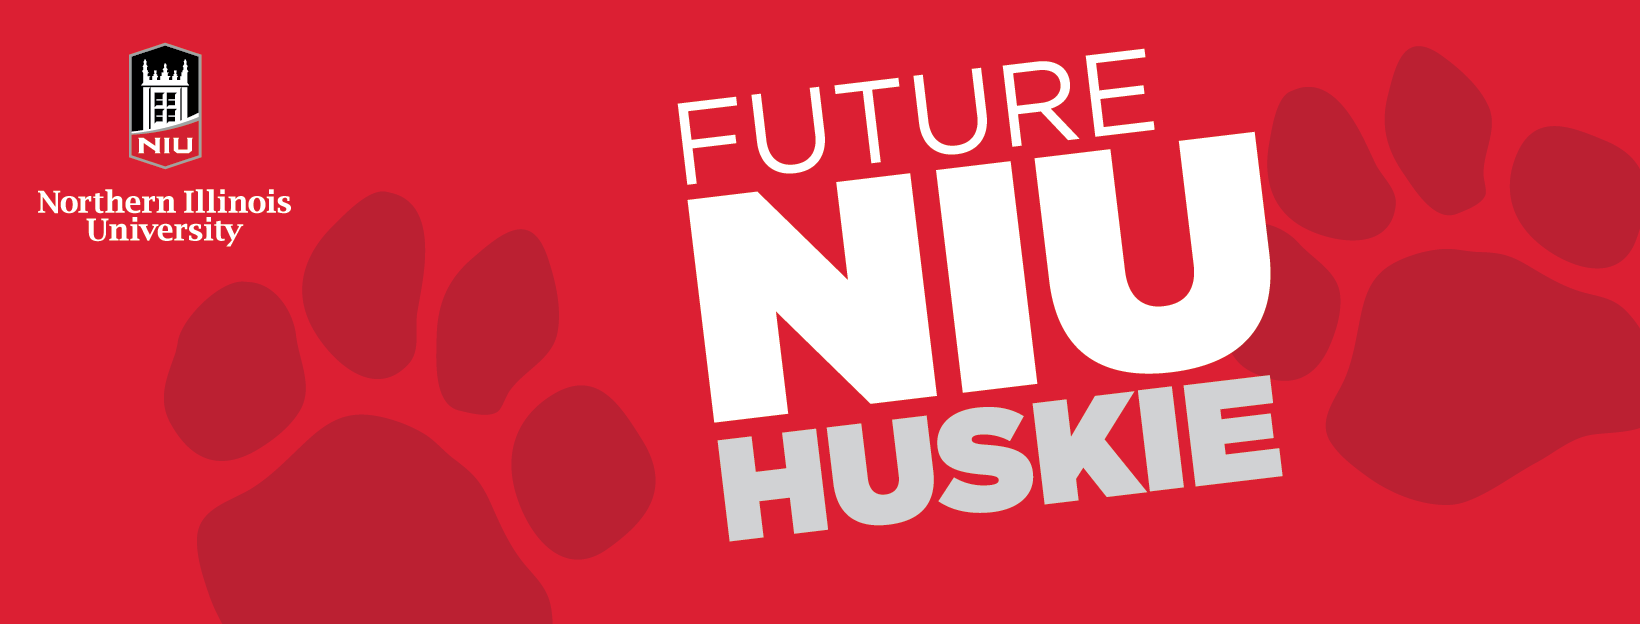 Future Huskie - Red for Profile